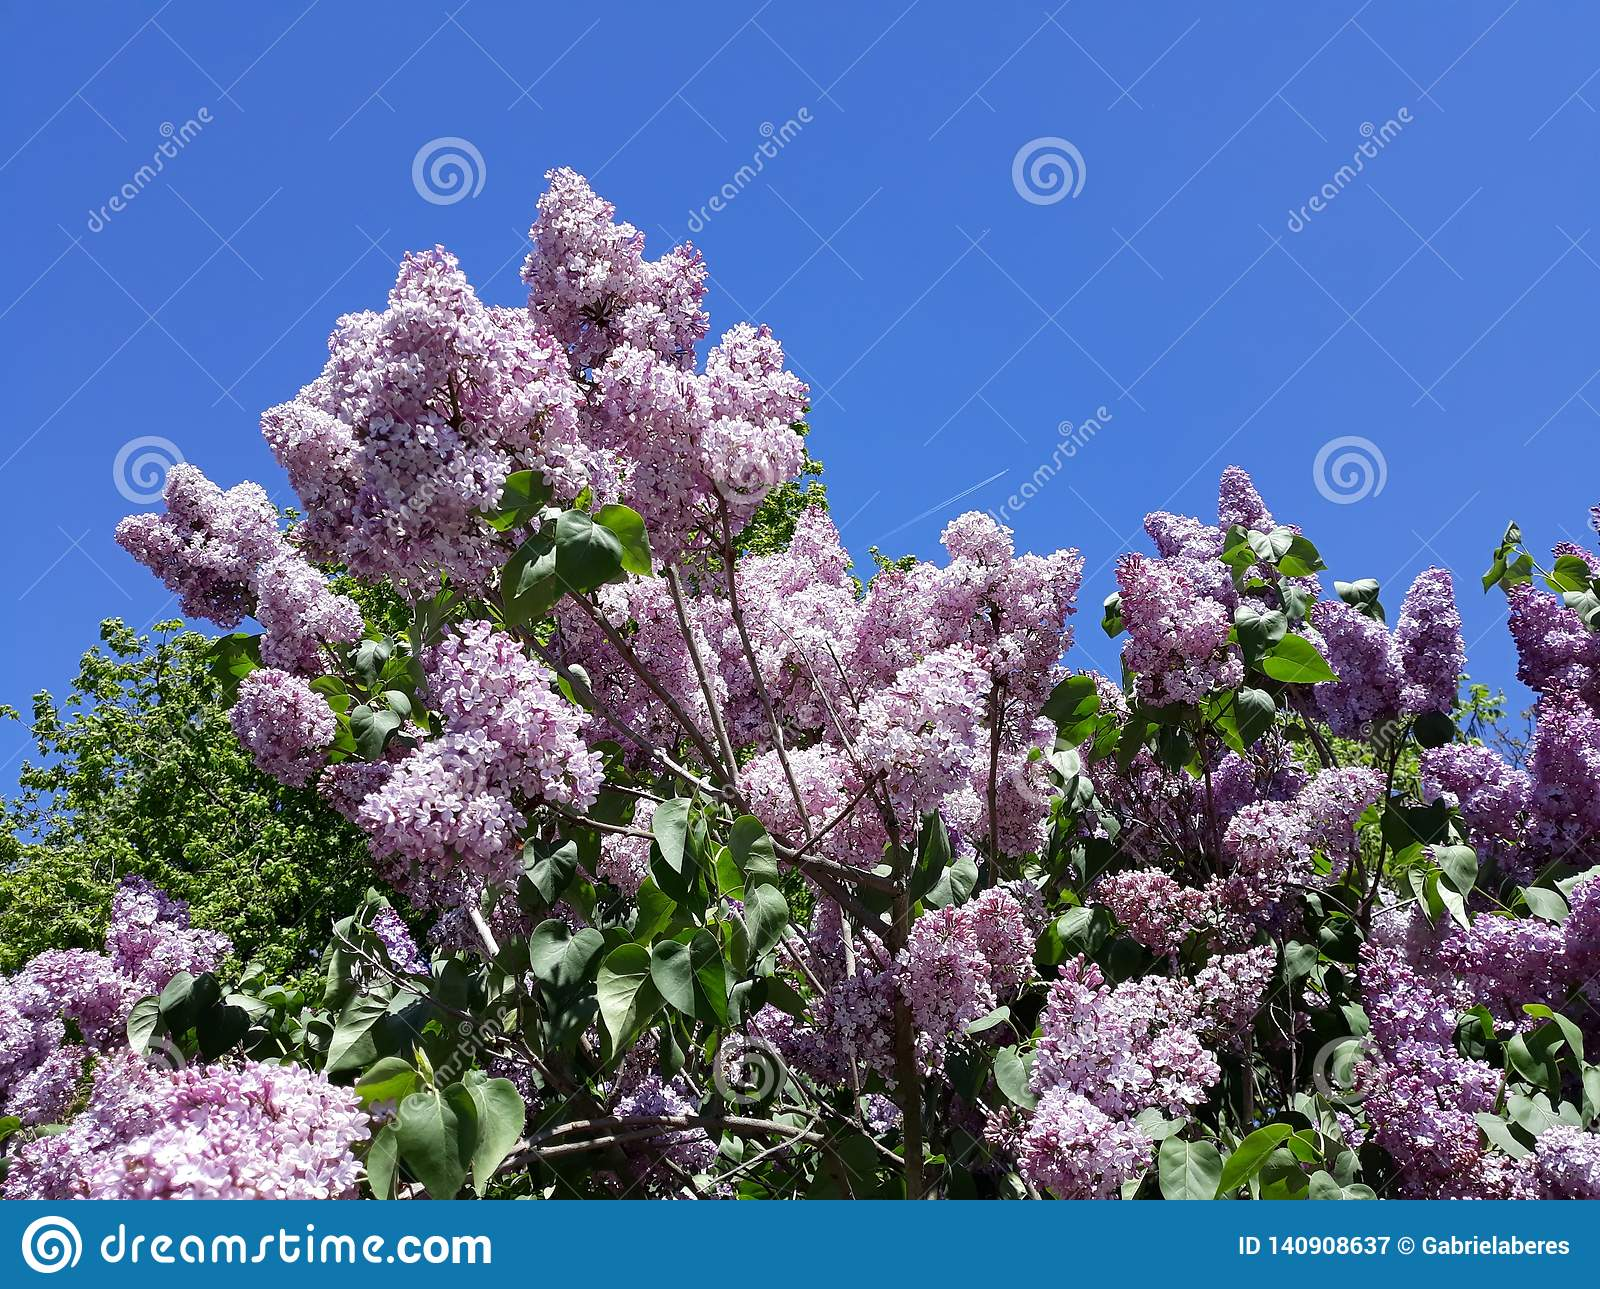 Branches Of Purple Lilac Flowers Against Blue Sky Stock Image